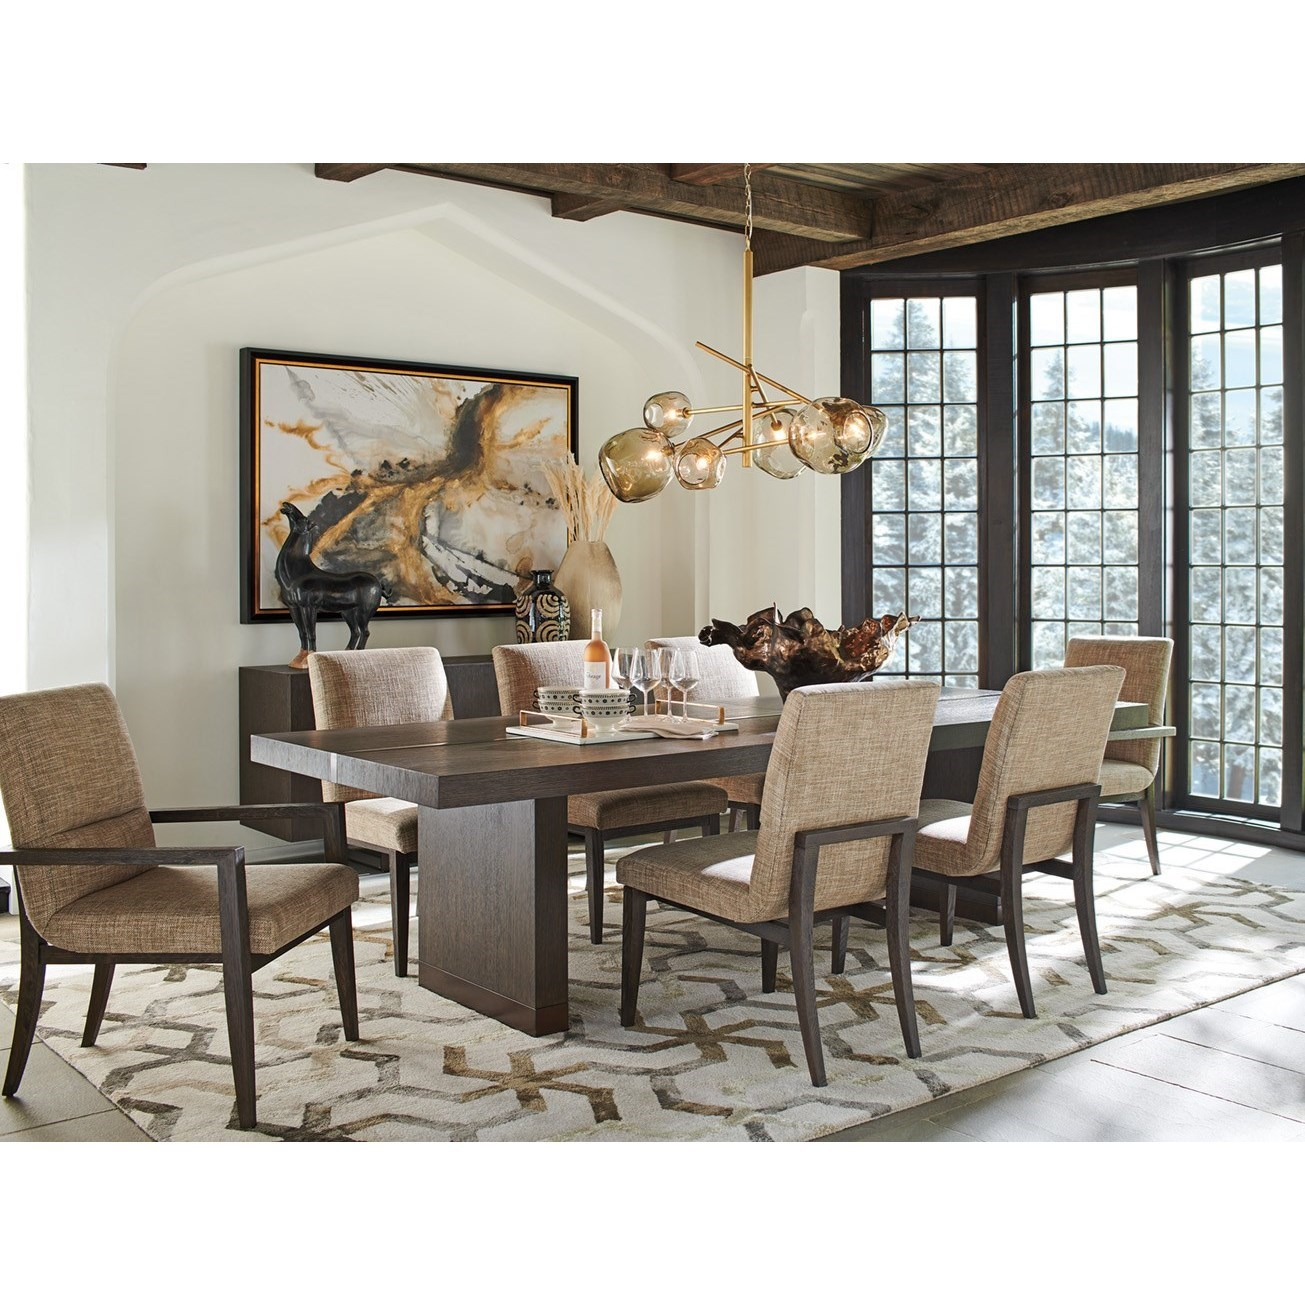 Park City 9-Piece Dining Set by Barclay Butera at Baer's Furniture